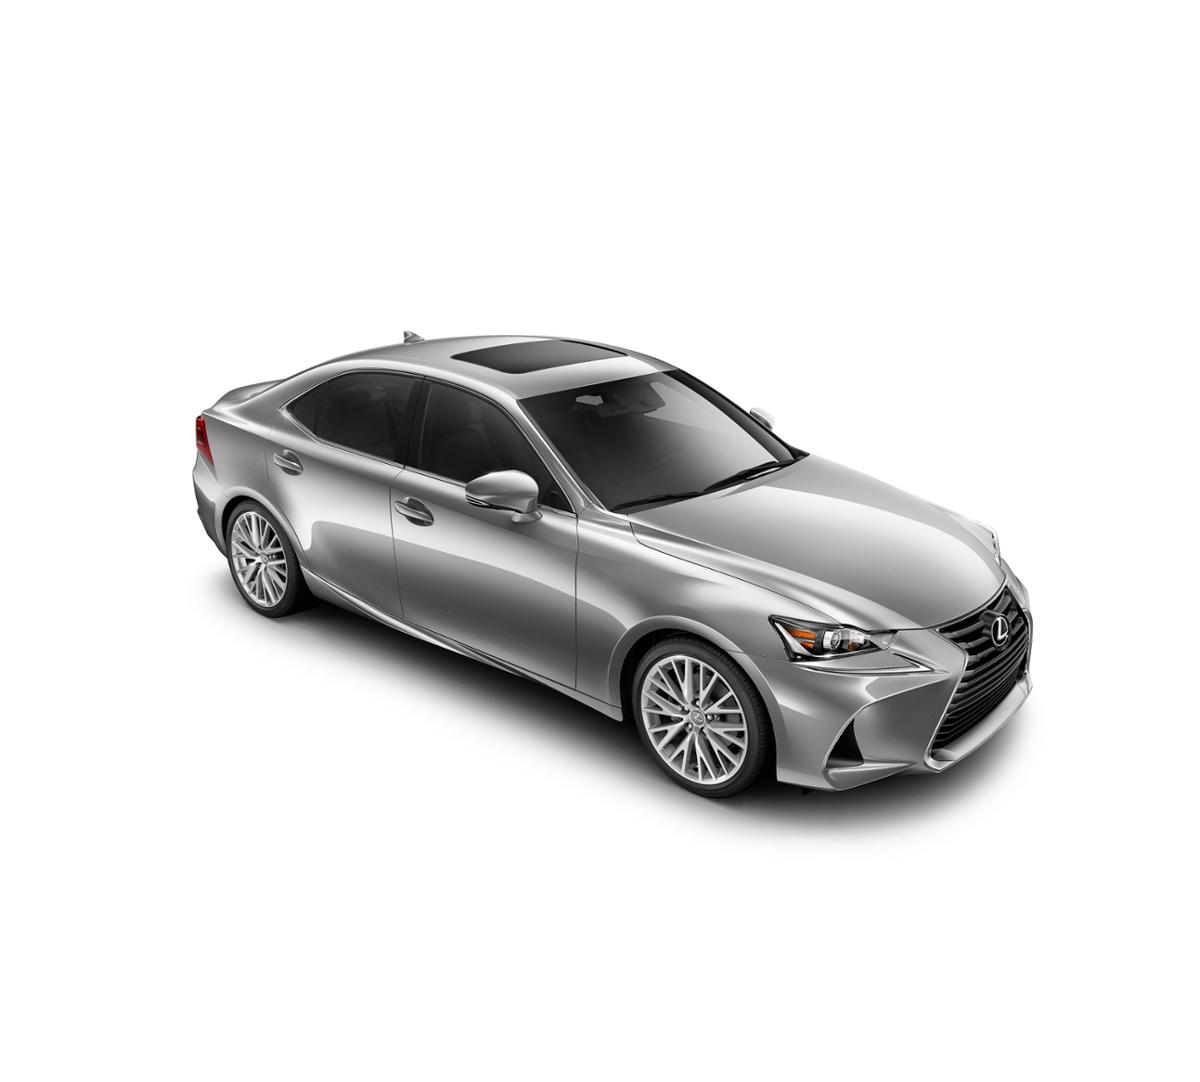 new 2017 lexus is turbo silver lining metallic for sale in houston pearland league city tx. Black Bedroom Furniture Sets. Home Design Ideas